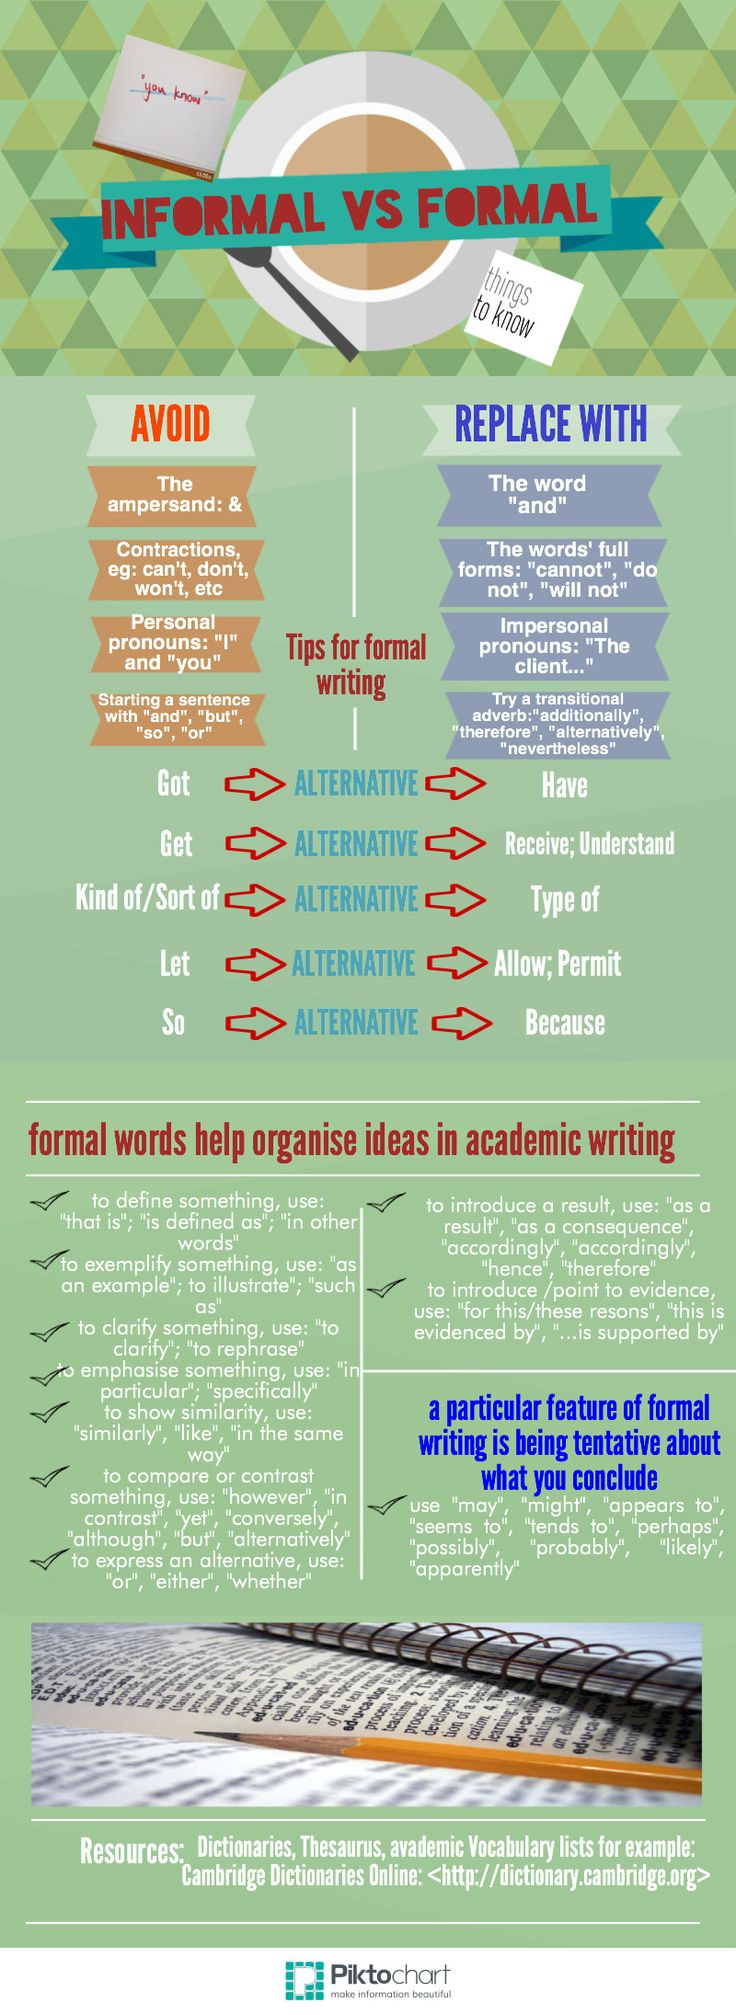 Another helpful handout for all of my English classes #AcademicWriting #Writingtip